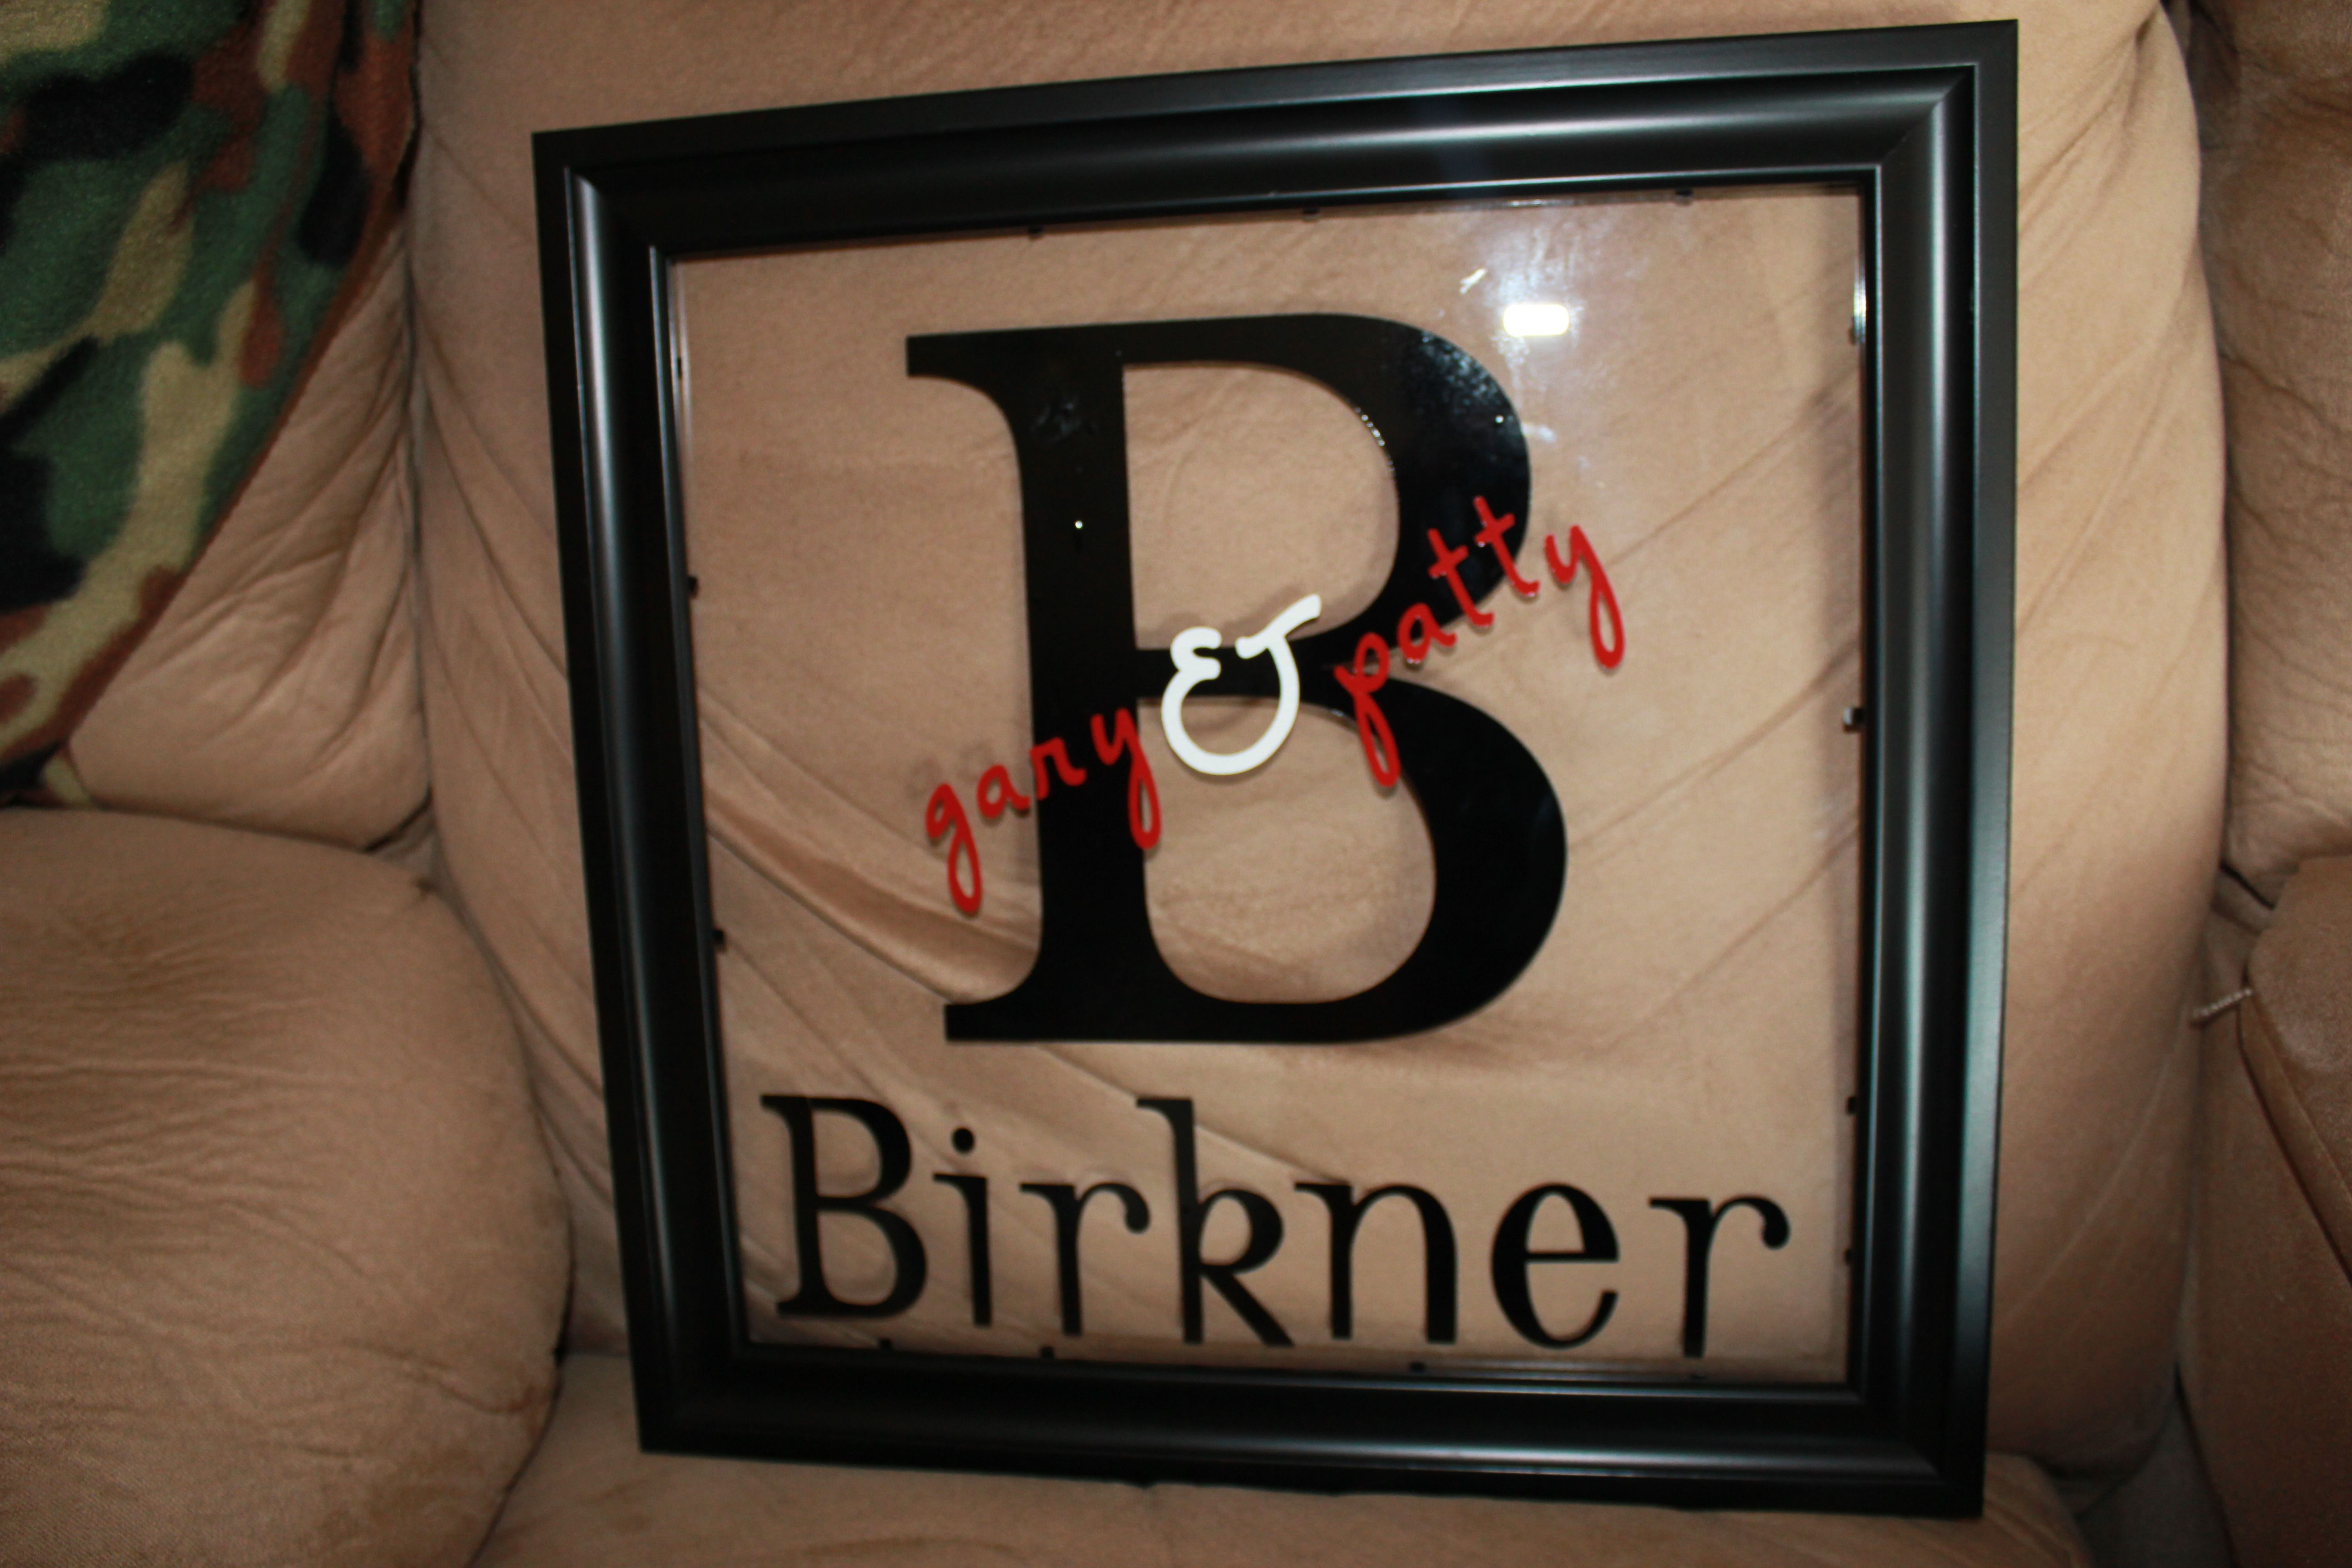 Great Couples Gift I Attached The Vinyl Letters To The Glass Of A 12 X 12 Picture Frame Another Awesome Use Of M 12 Picture Frame Explorers Crafts Diy Gift